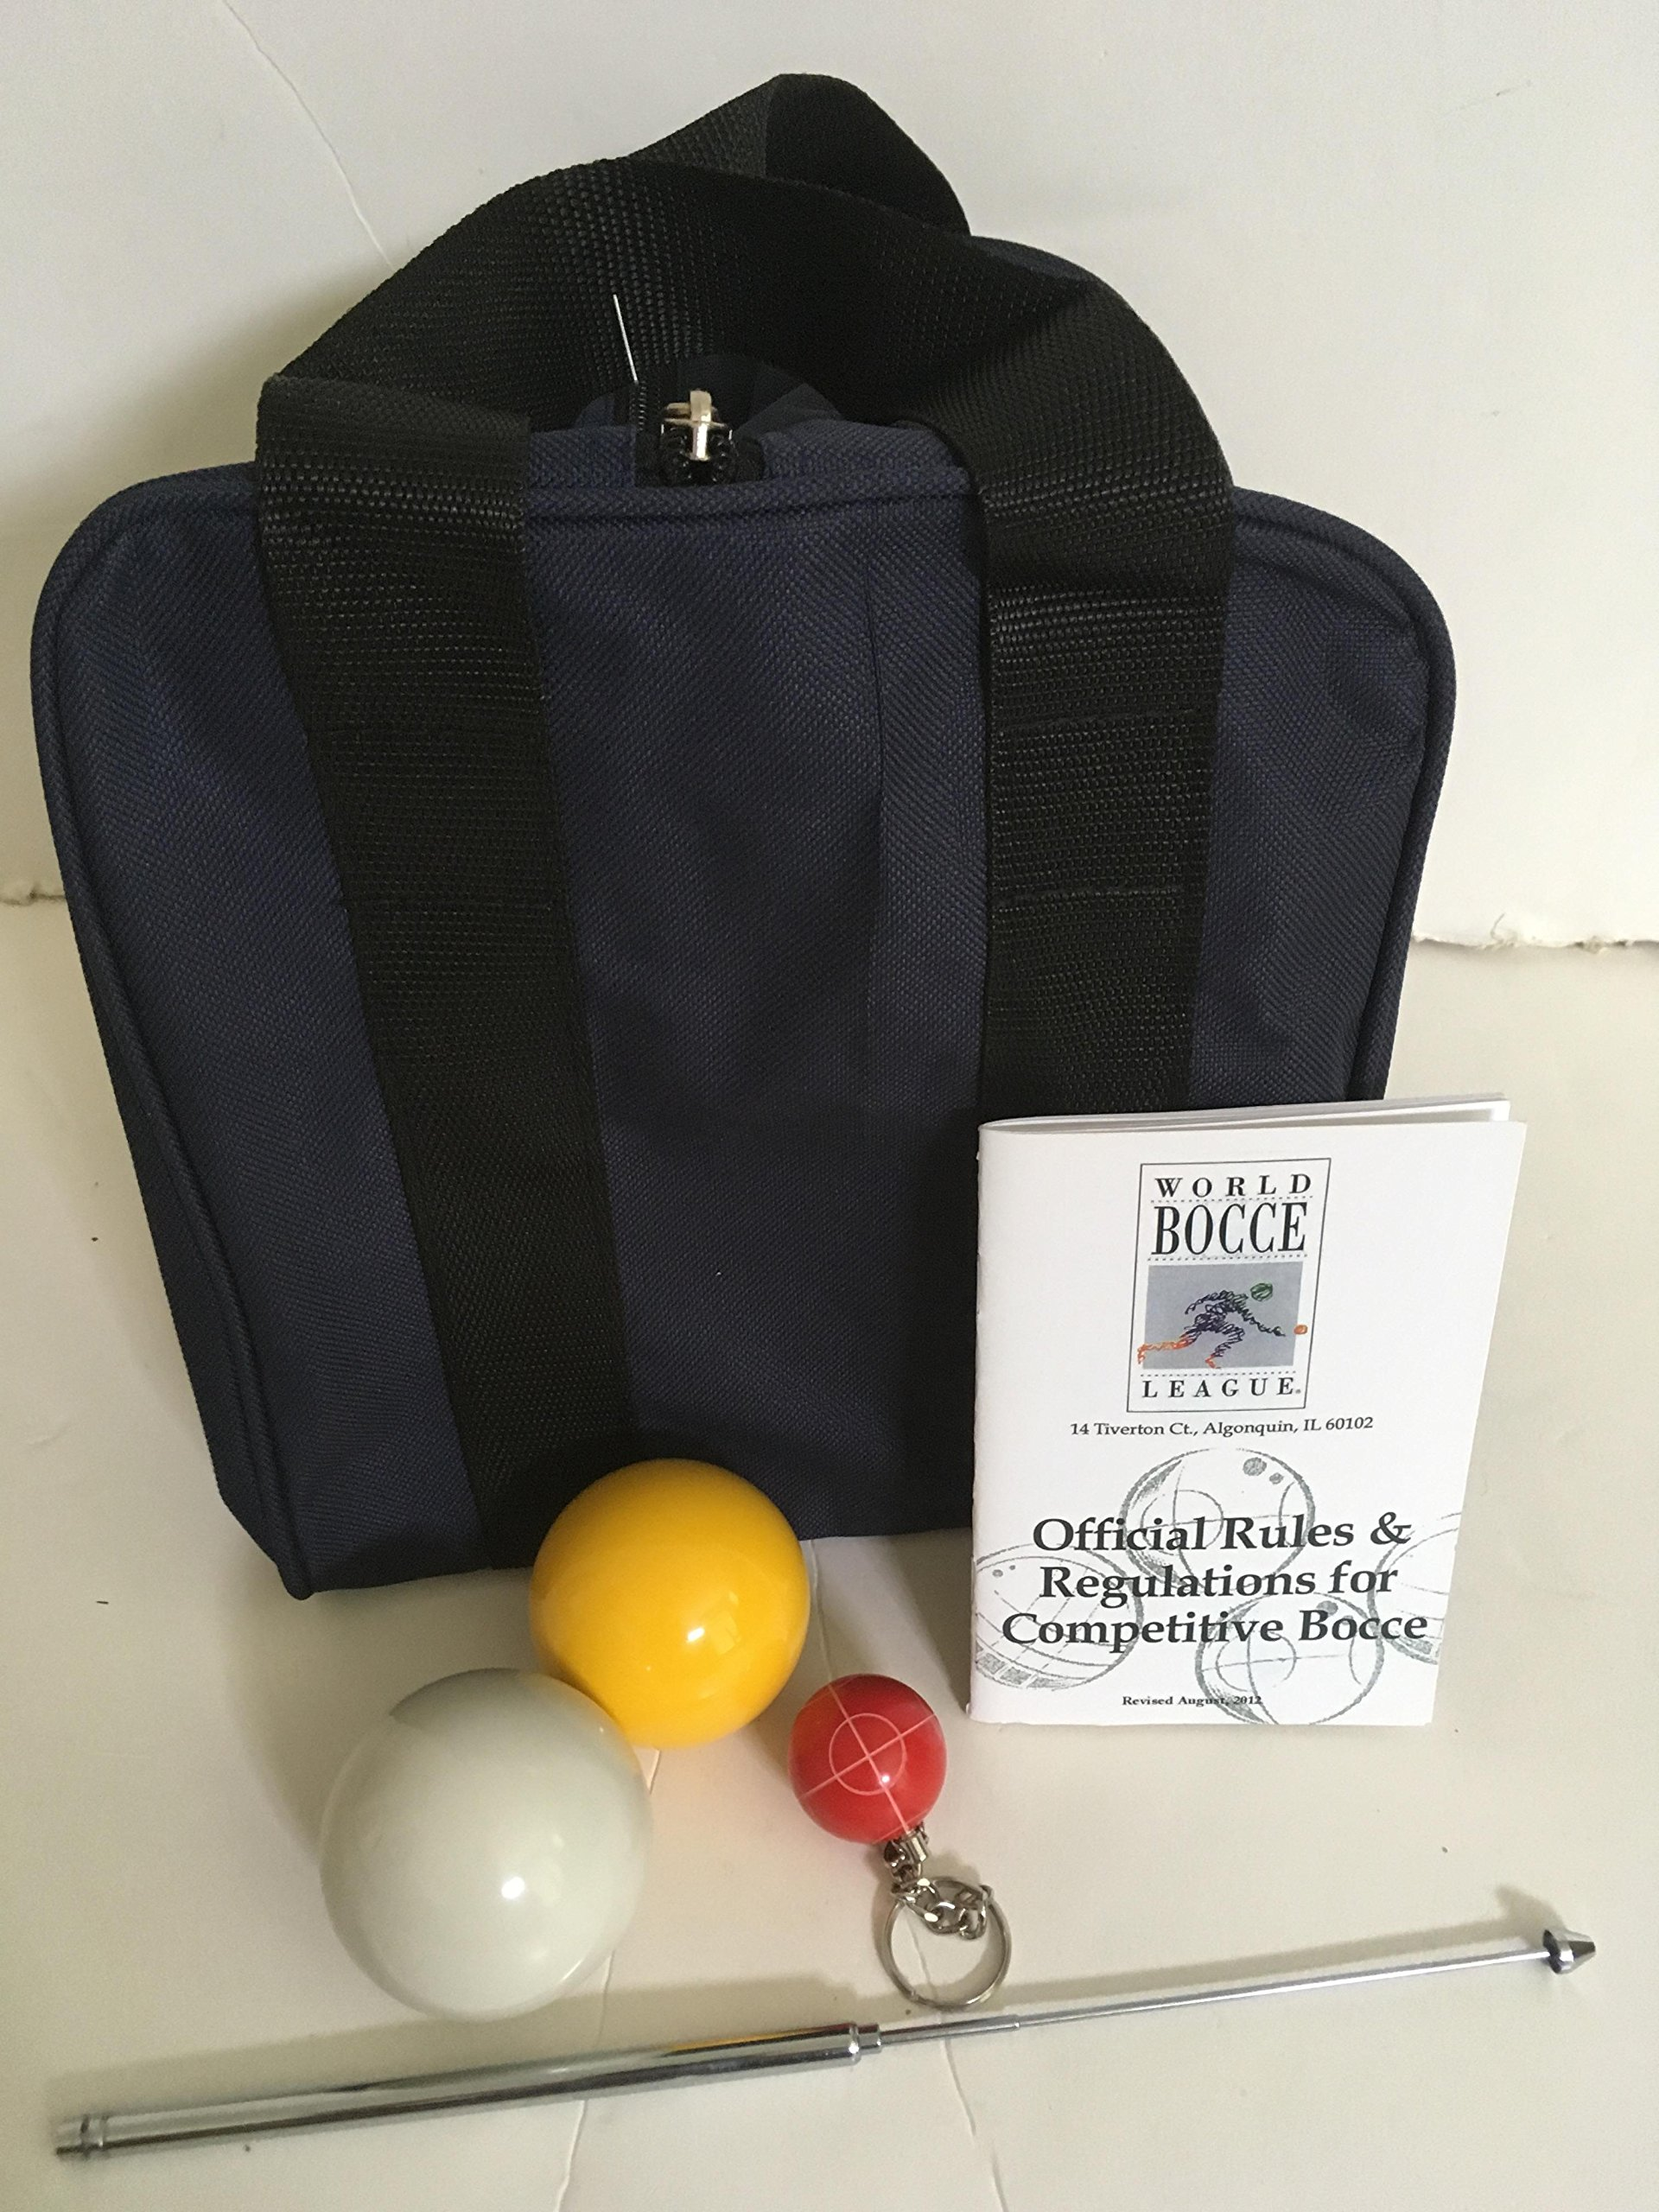 Unique Bocce Ball Accessories Package - Extra Heavy Duty Nylon Bocce Bag (Blue with Black Handles), yellow and white pallinas, Extendable Measuring Device, Rule Book and Keychain